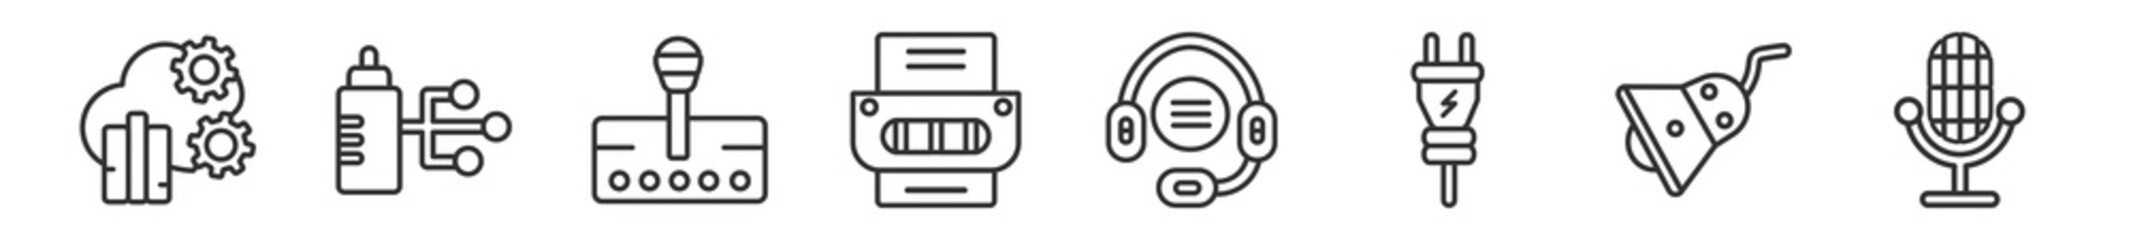 Obraz outline set of technology line icons. linear vector icons such as cloud analysis, wi connection, transmission, office printer, telemarketing, retro microphone. vector illustration. - fototapety do salonu